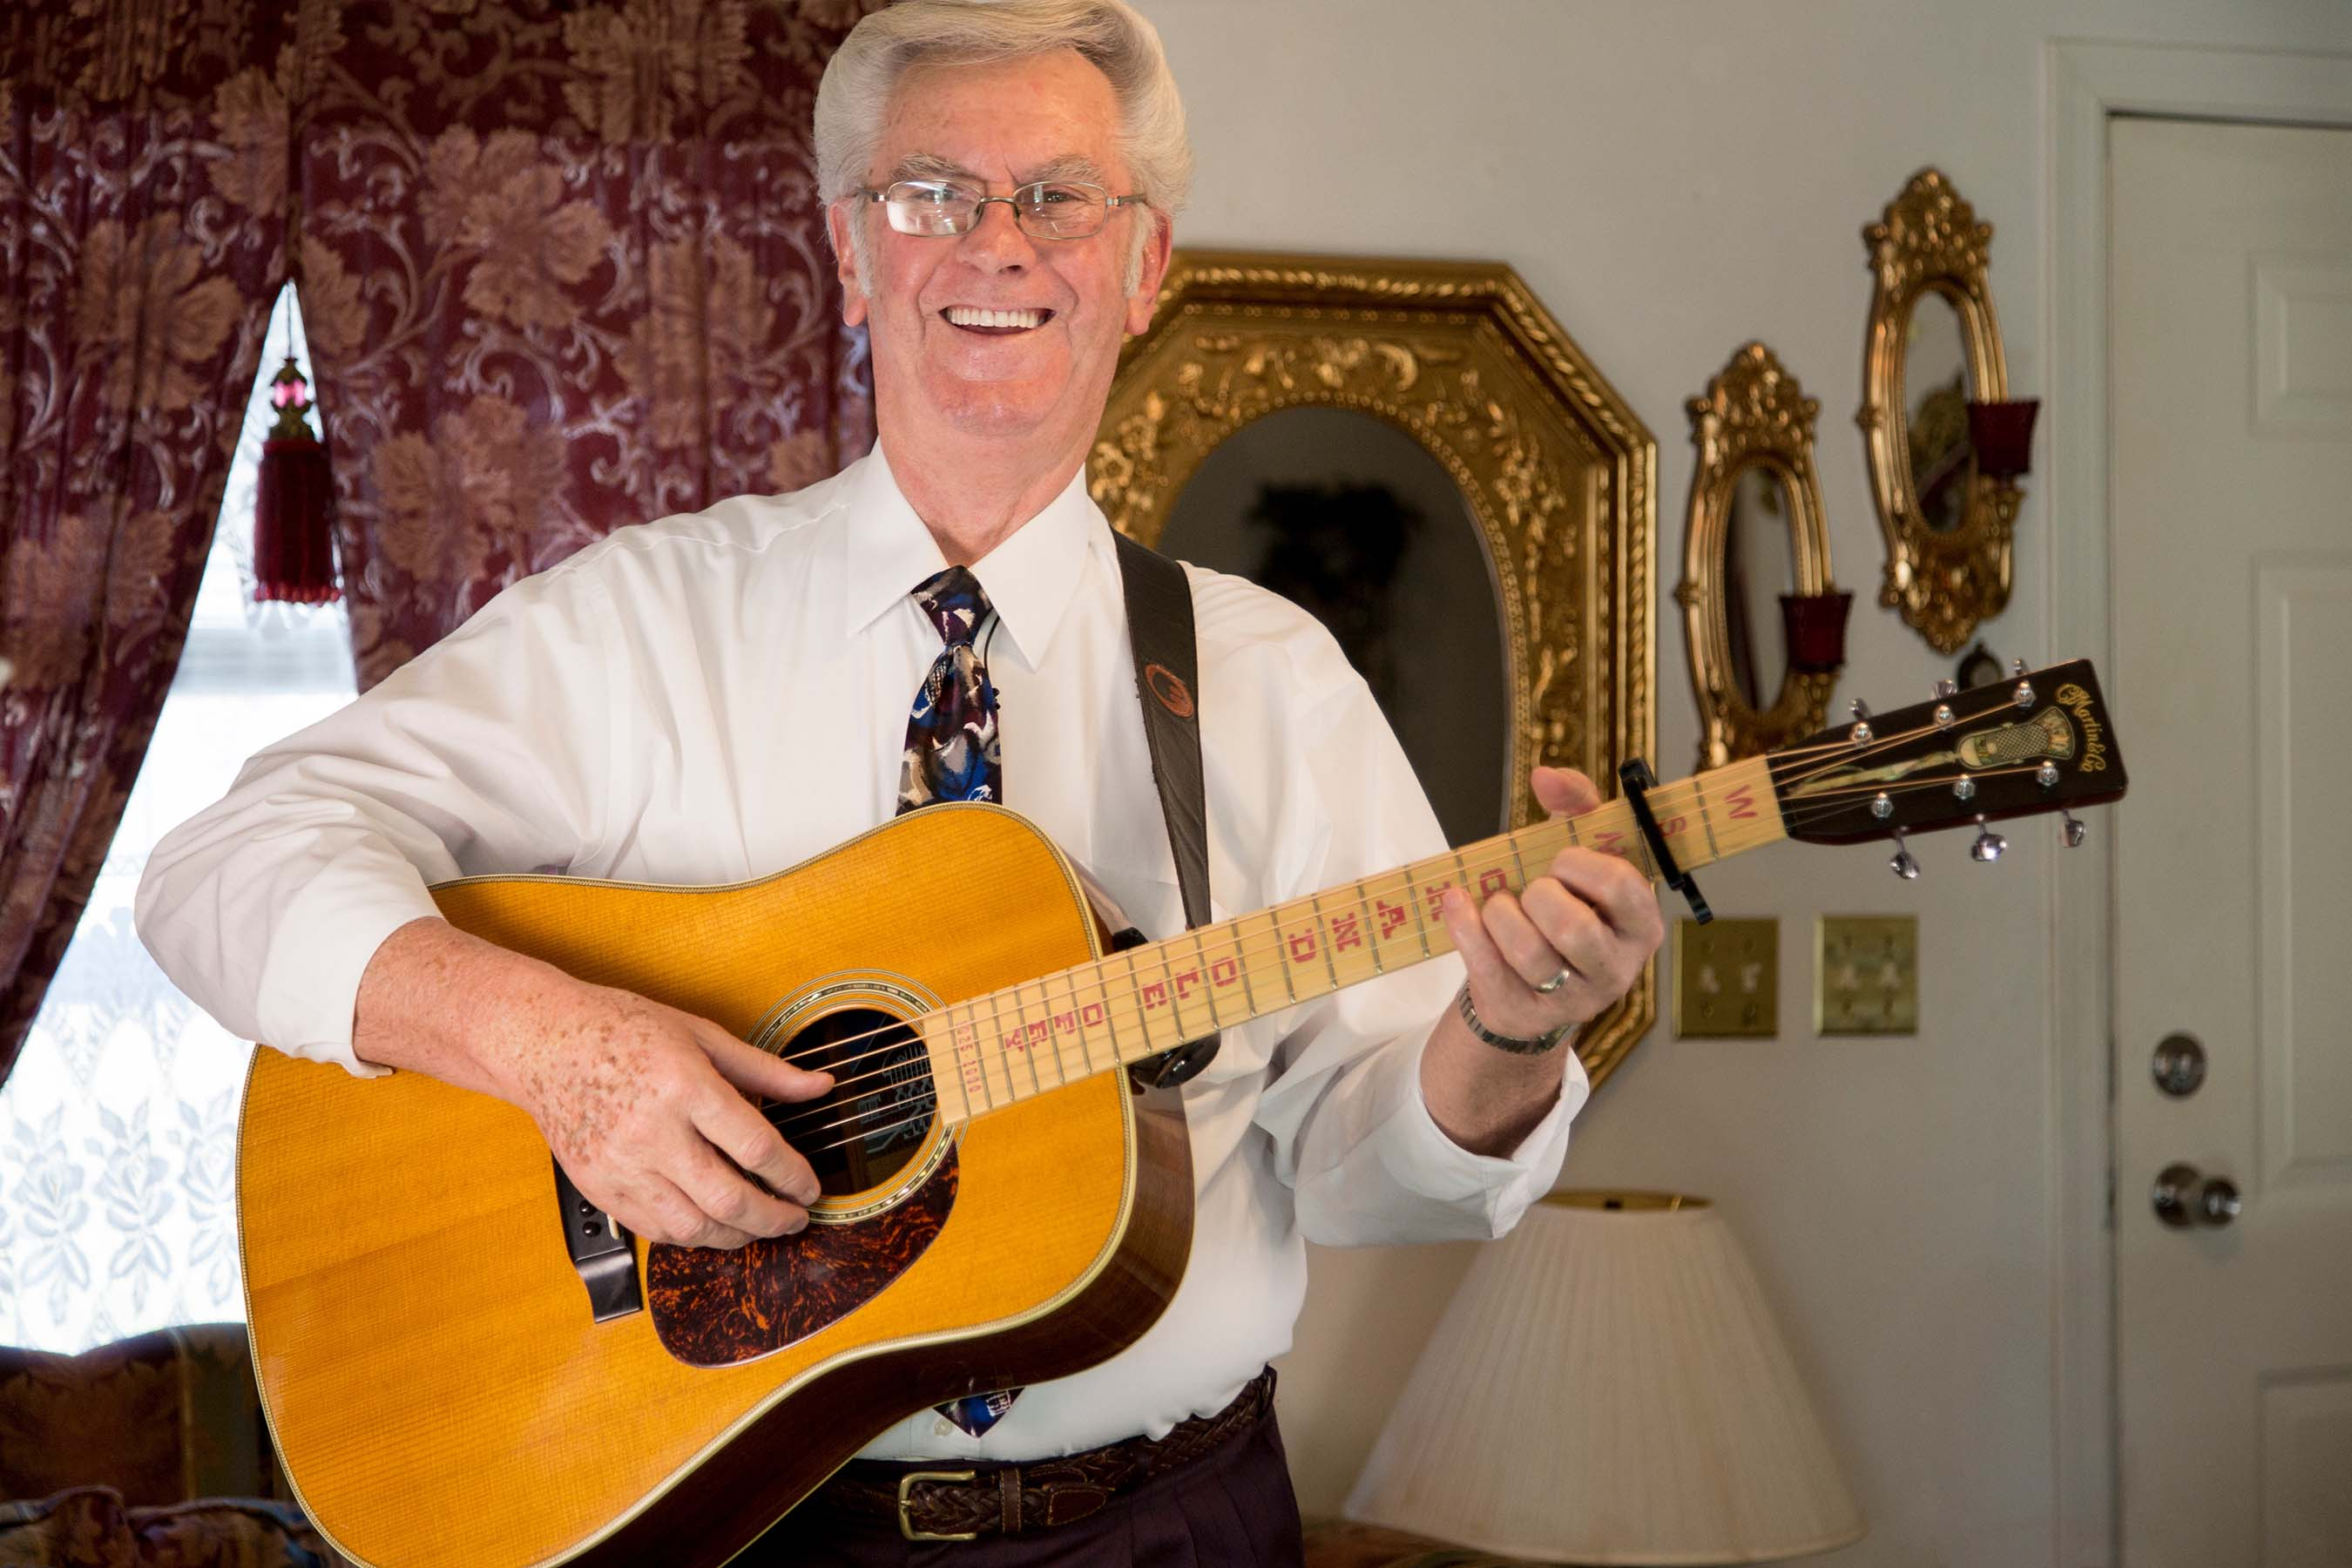 Lee Allen has been playing bluegrass music on his guitar for 50 years.